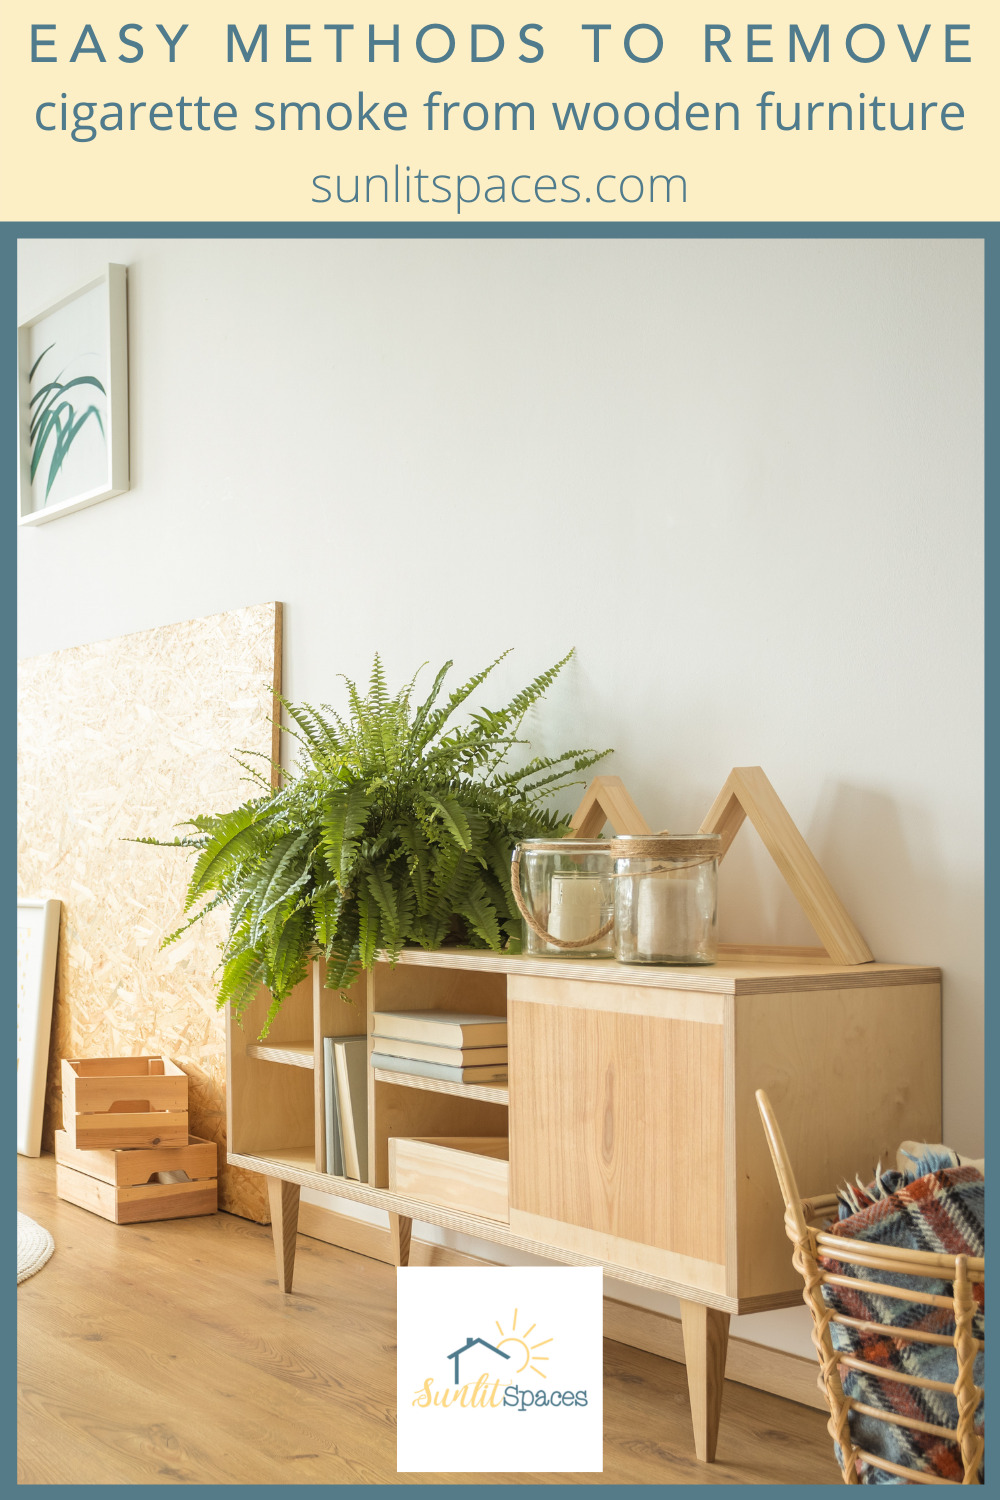 Sunlitspaces.com has the best ideas to help you design and execute a perfect living space! Find creative ways to make your place feel like home. Get rid of that horrible smell with these solutions for removing cigarette smoke from wood furniture.